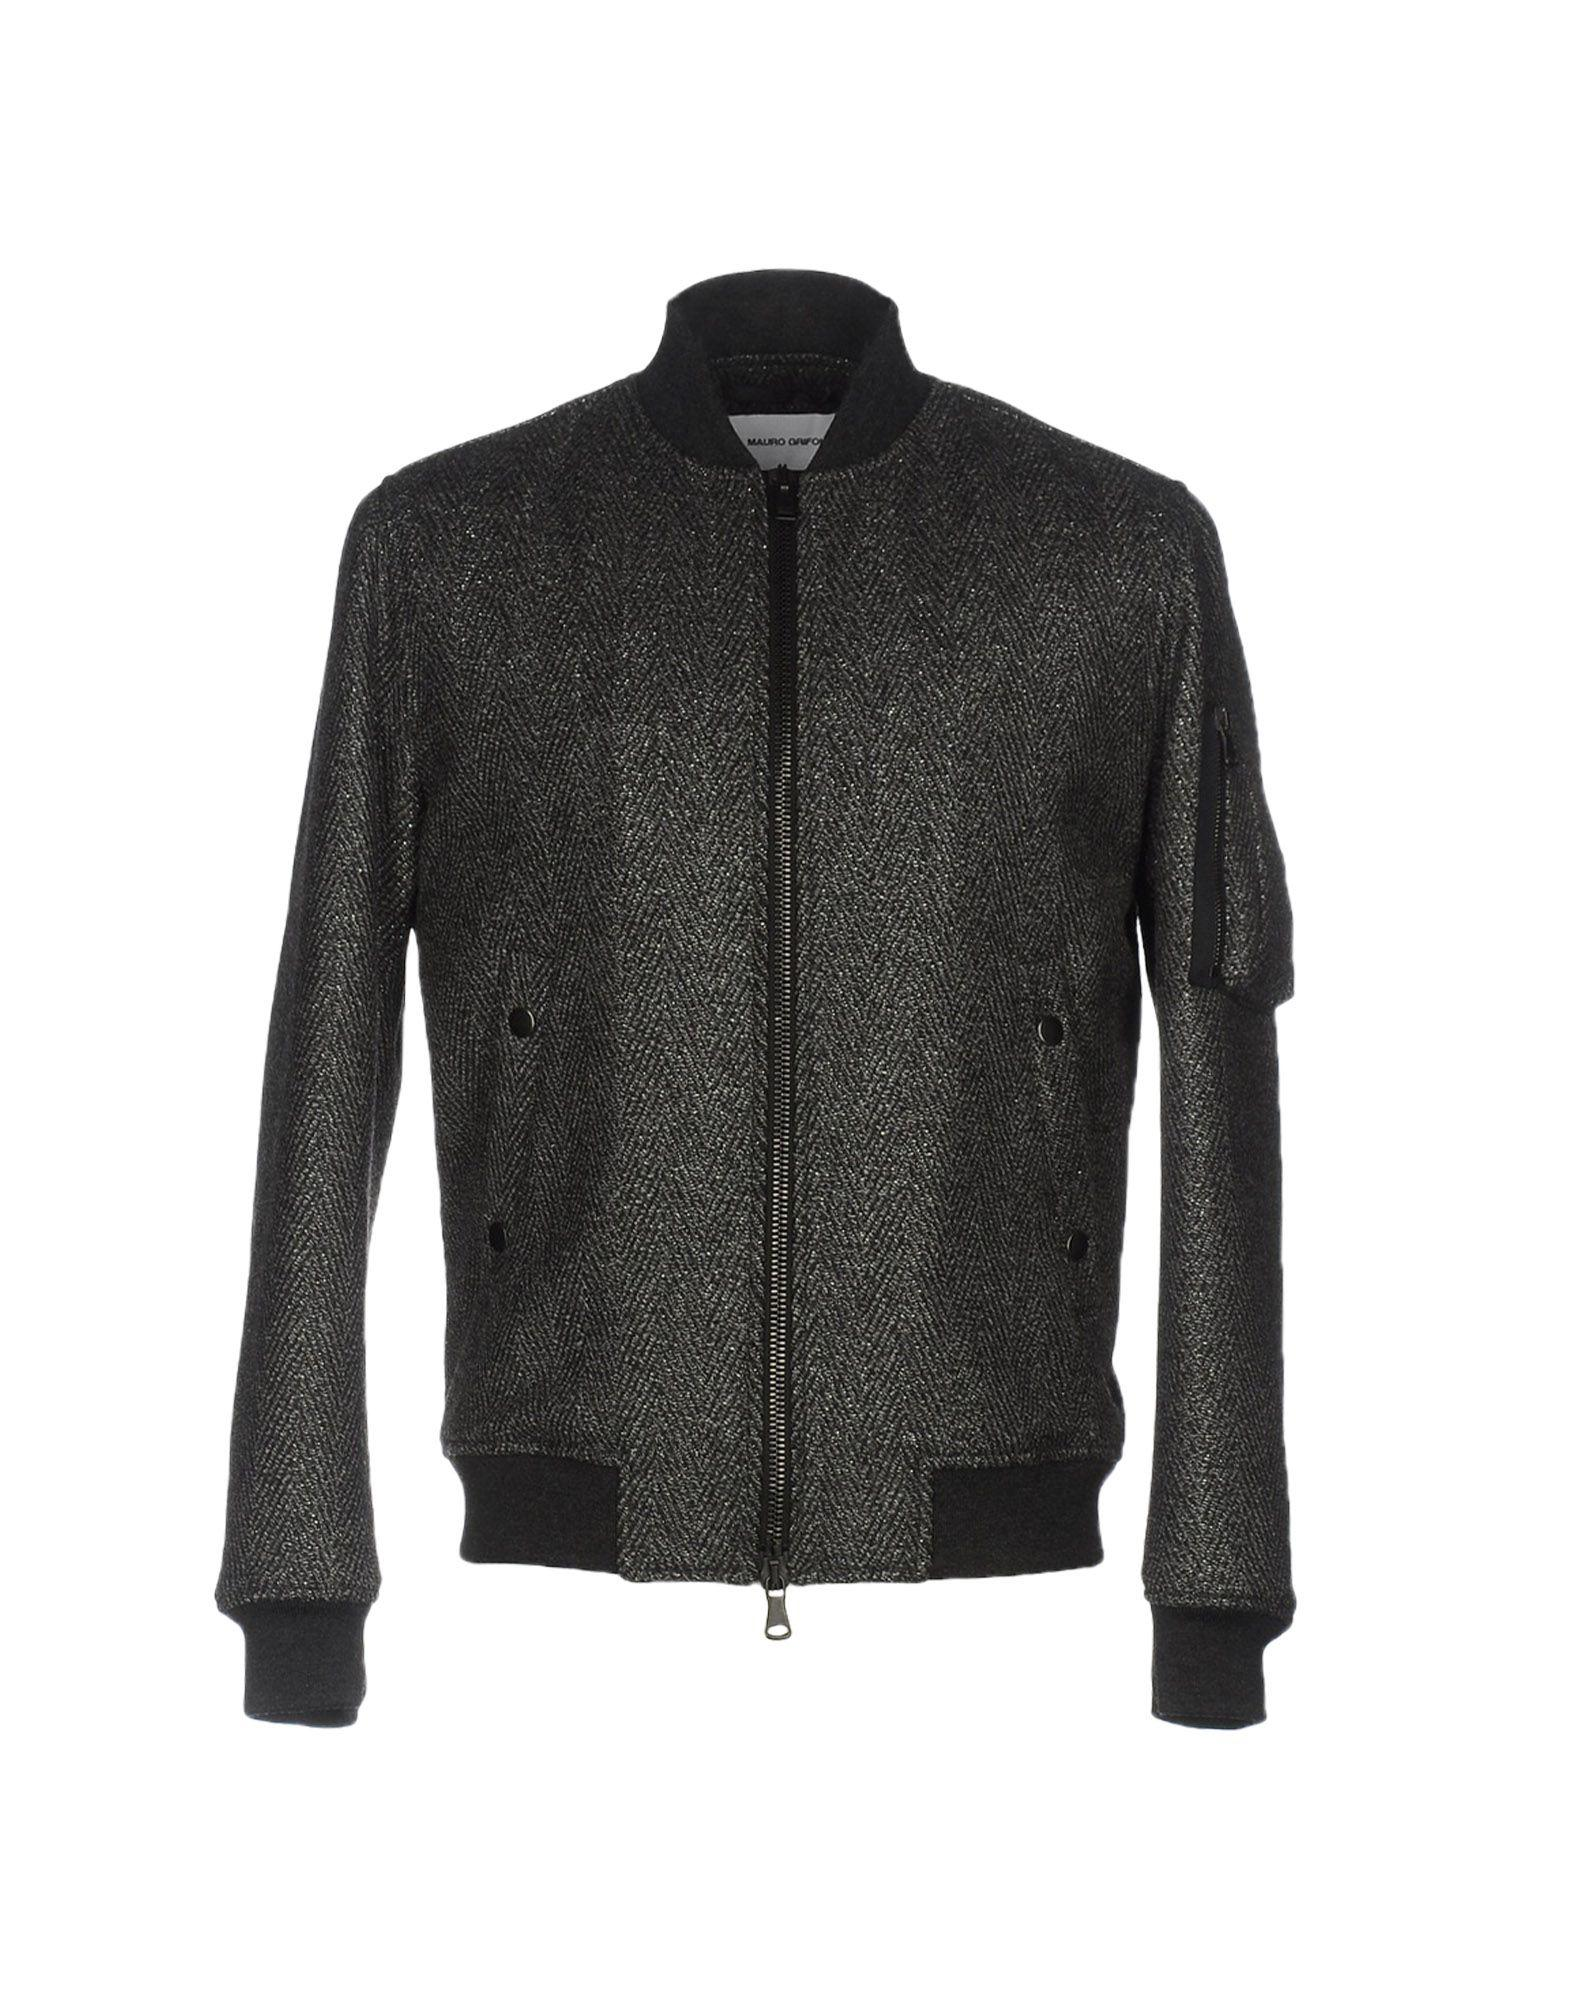 Mauro Grifoni Jacket In Gray For Men Lyst